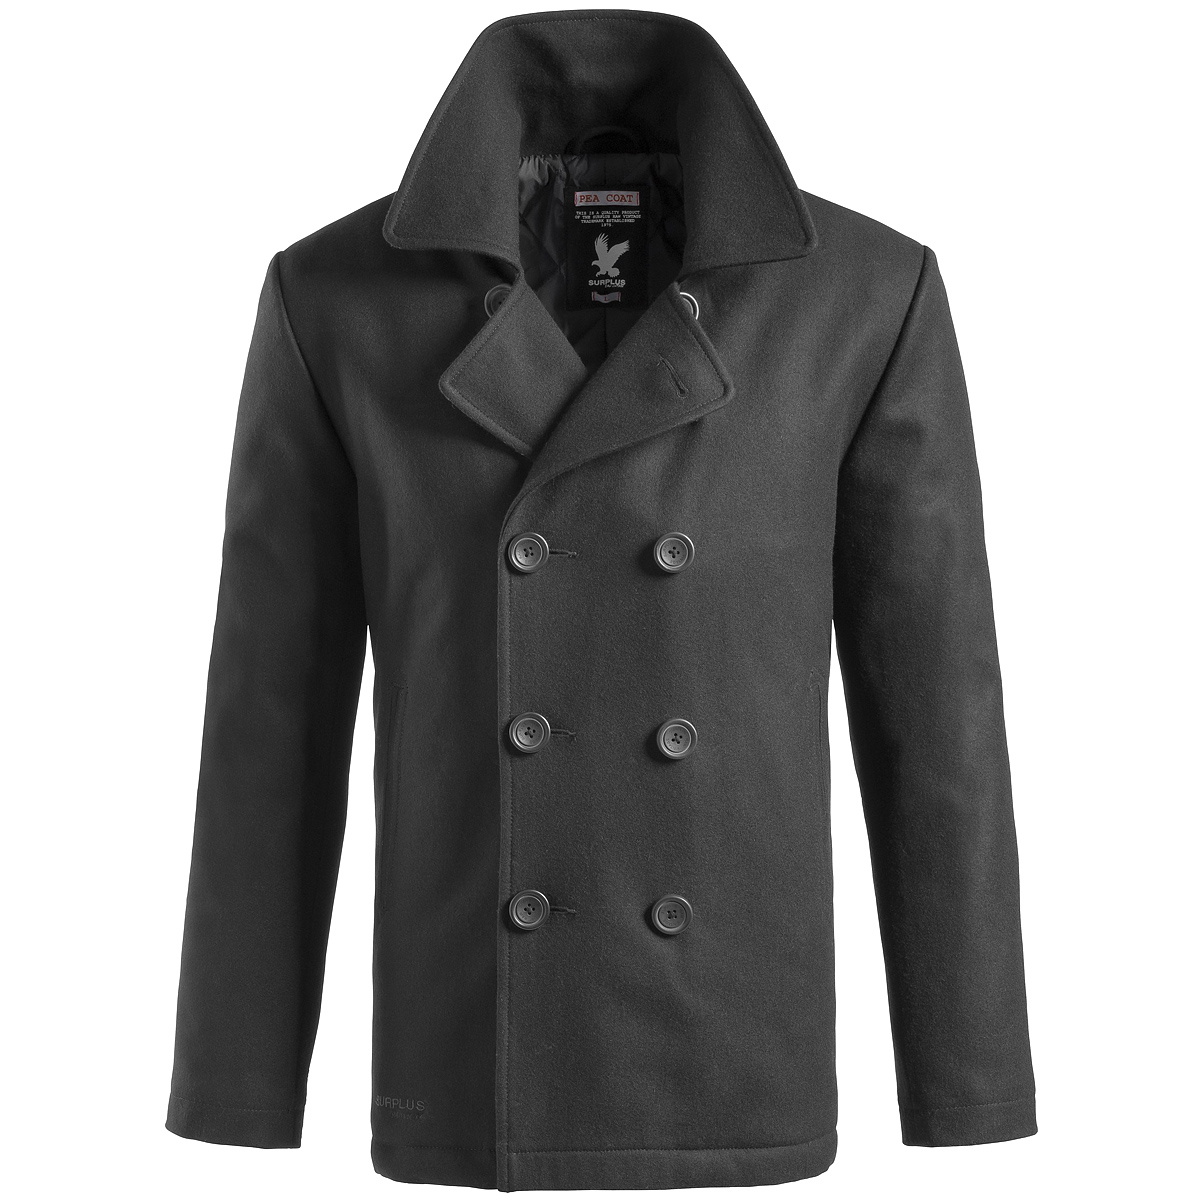 SURPLUS US NAVY PEA COAT CLASSIC STYLE WARM MENS ARMY REEFER JACKET WOOL BLACK